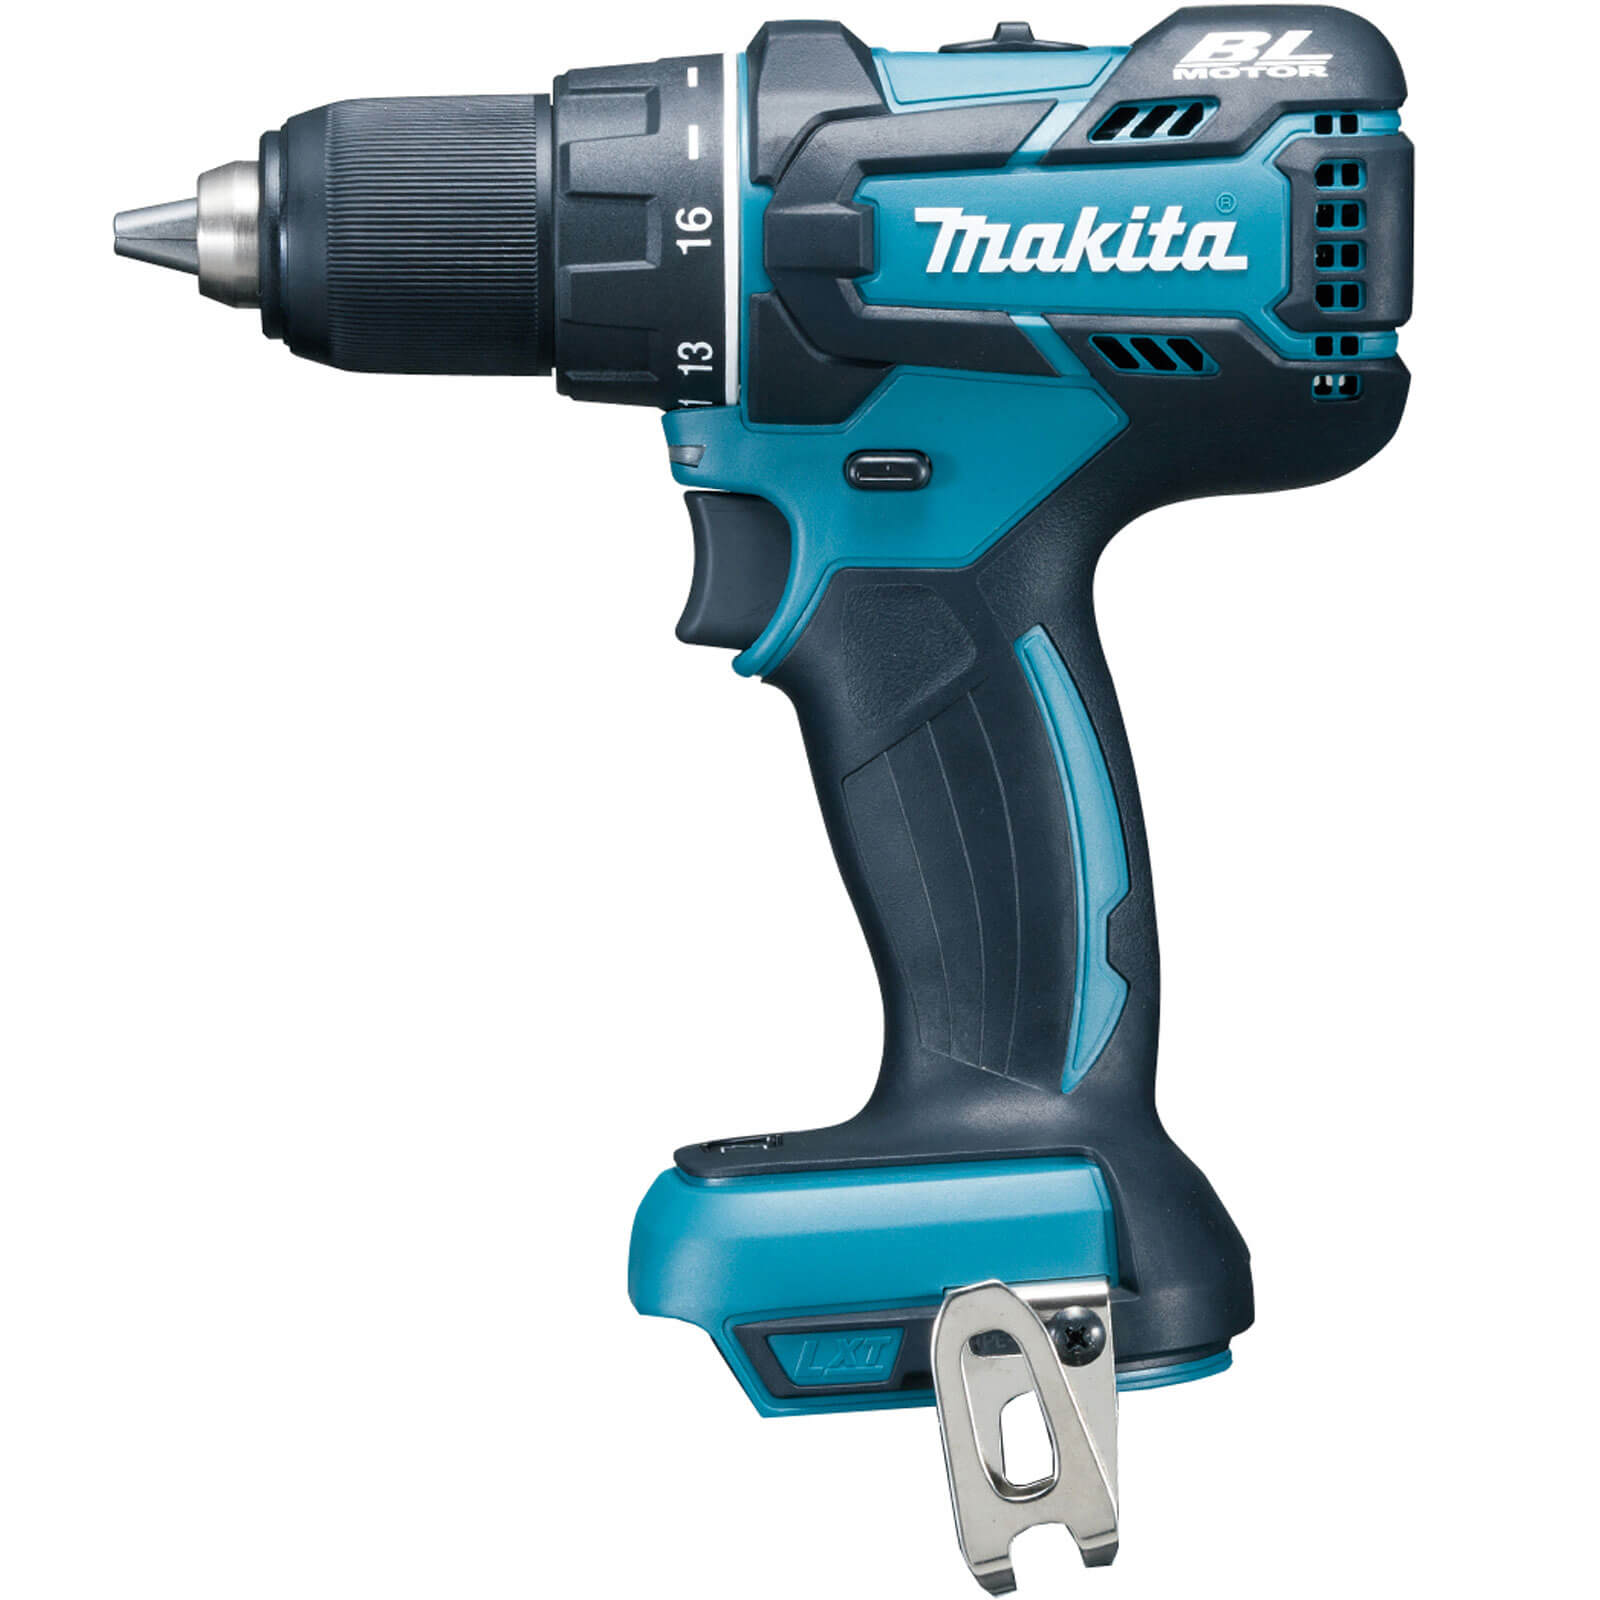 Makita DDF480 18V LXT Cordless Drill Driver No Batteries No Charger No Case